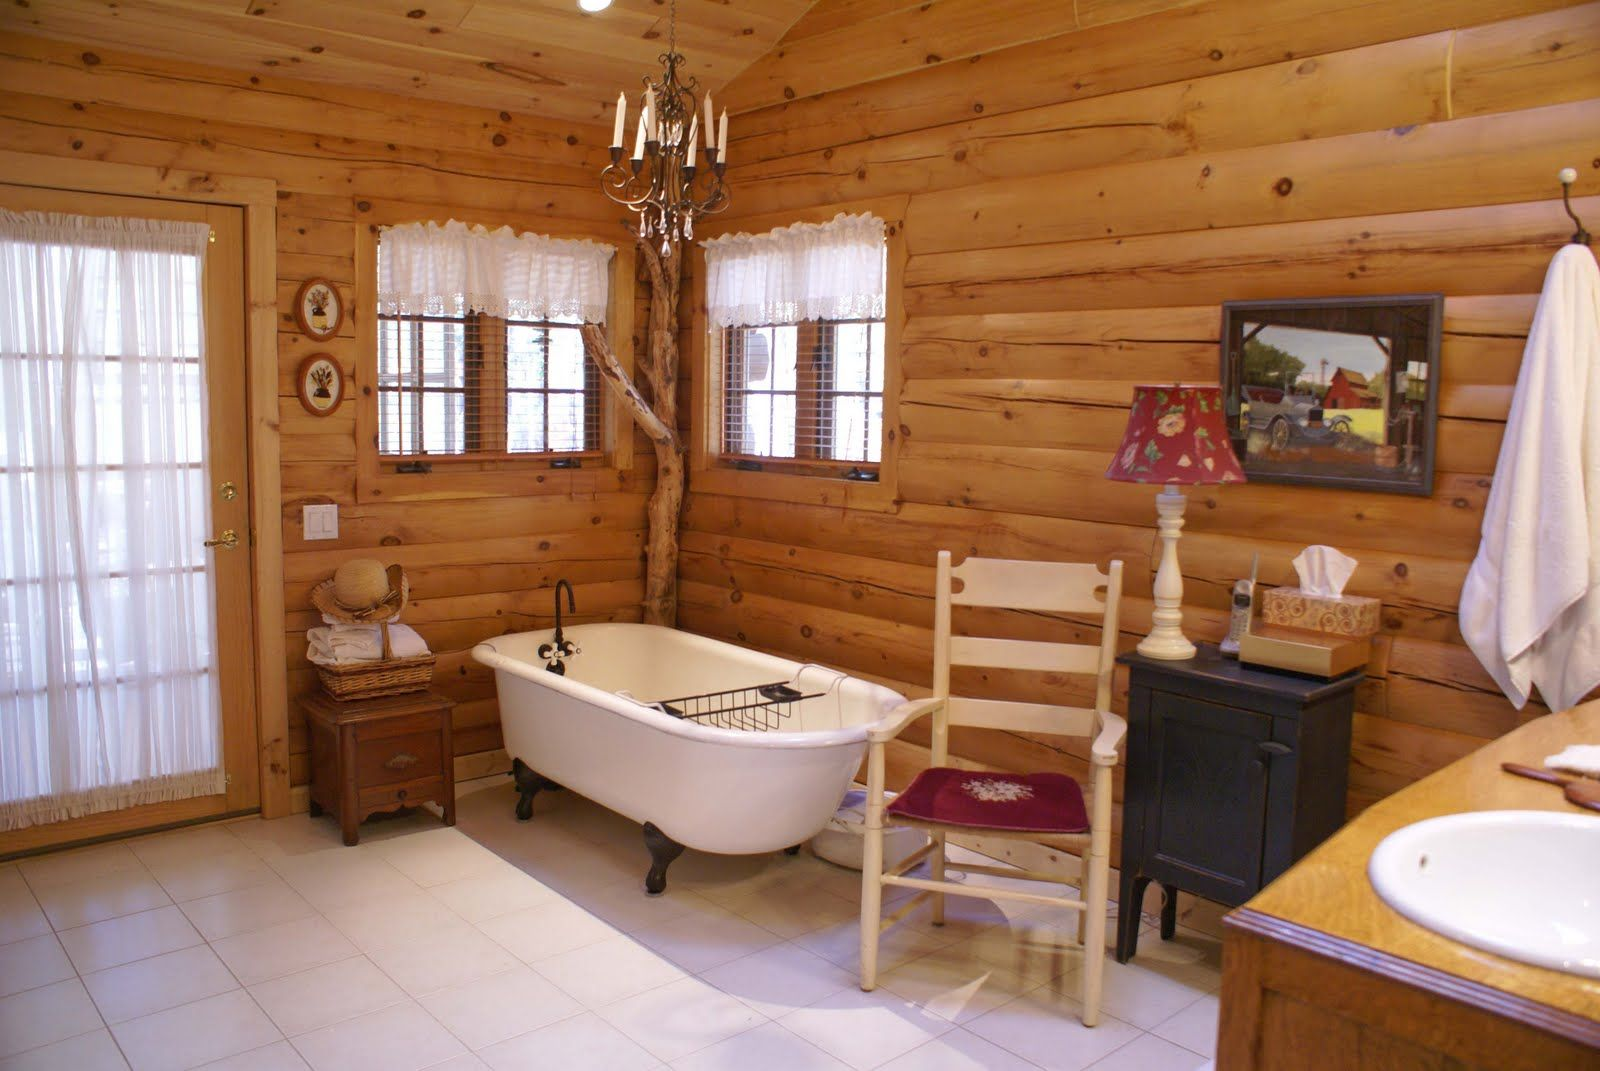 log cabin siding interior walls log home thoughts round log walls